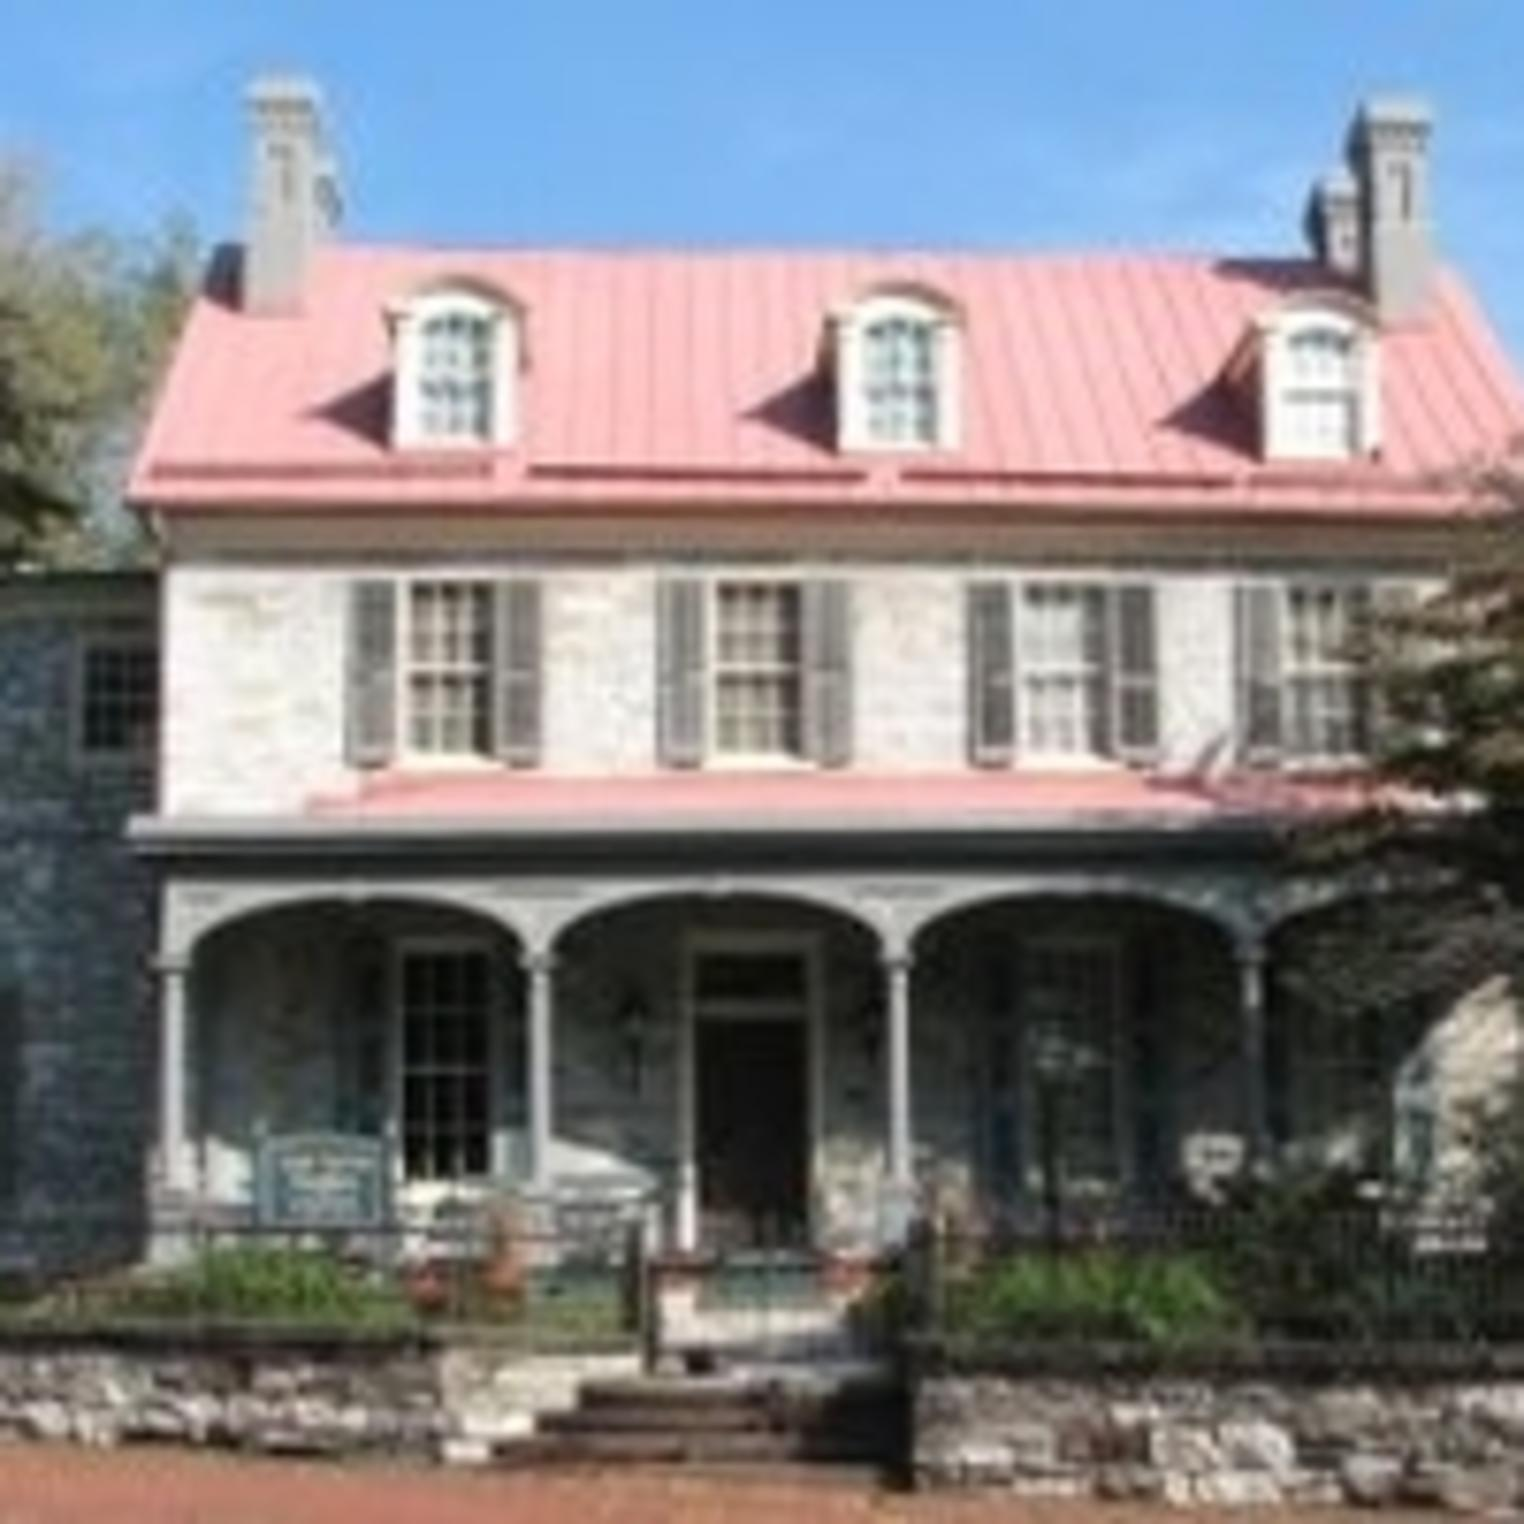 Historical Society of Dauphin County